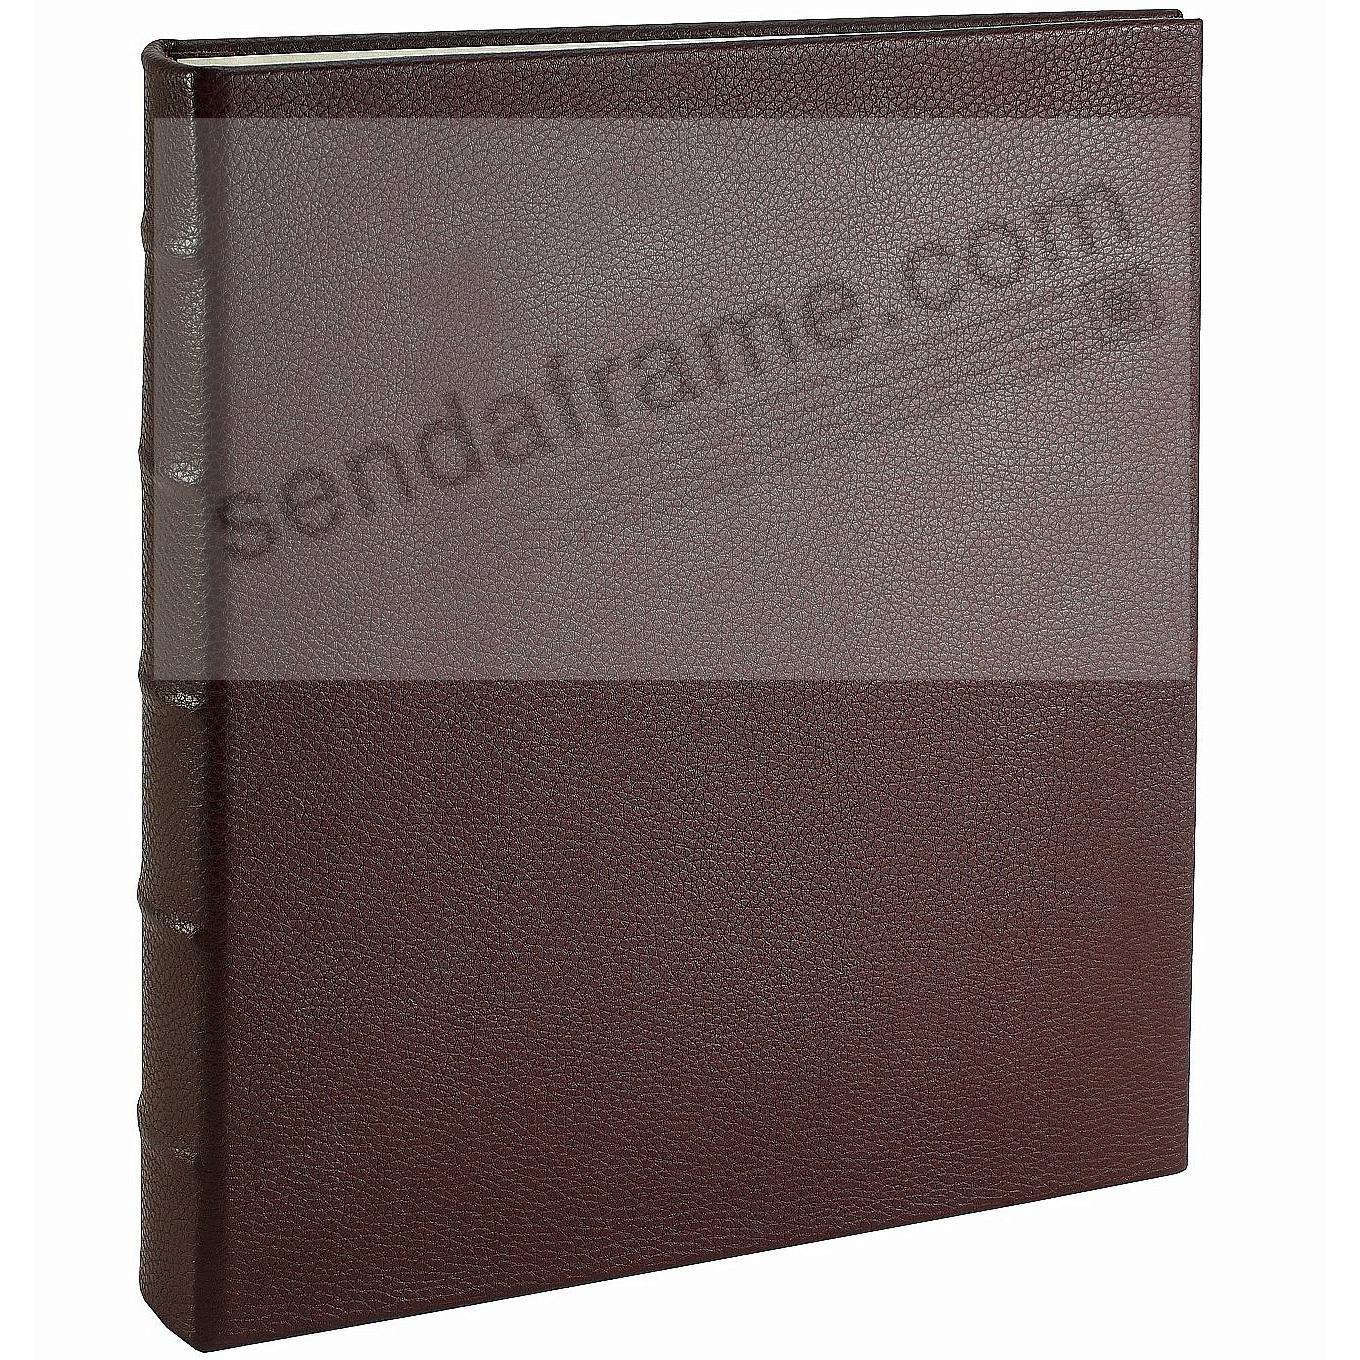 Post Impressions™ System Standard 3-ring  Binder (unfilled) Pebble-Brown Eco-leather